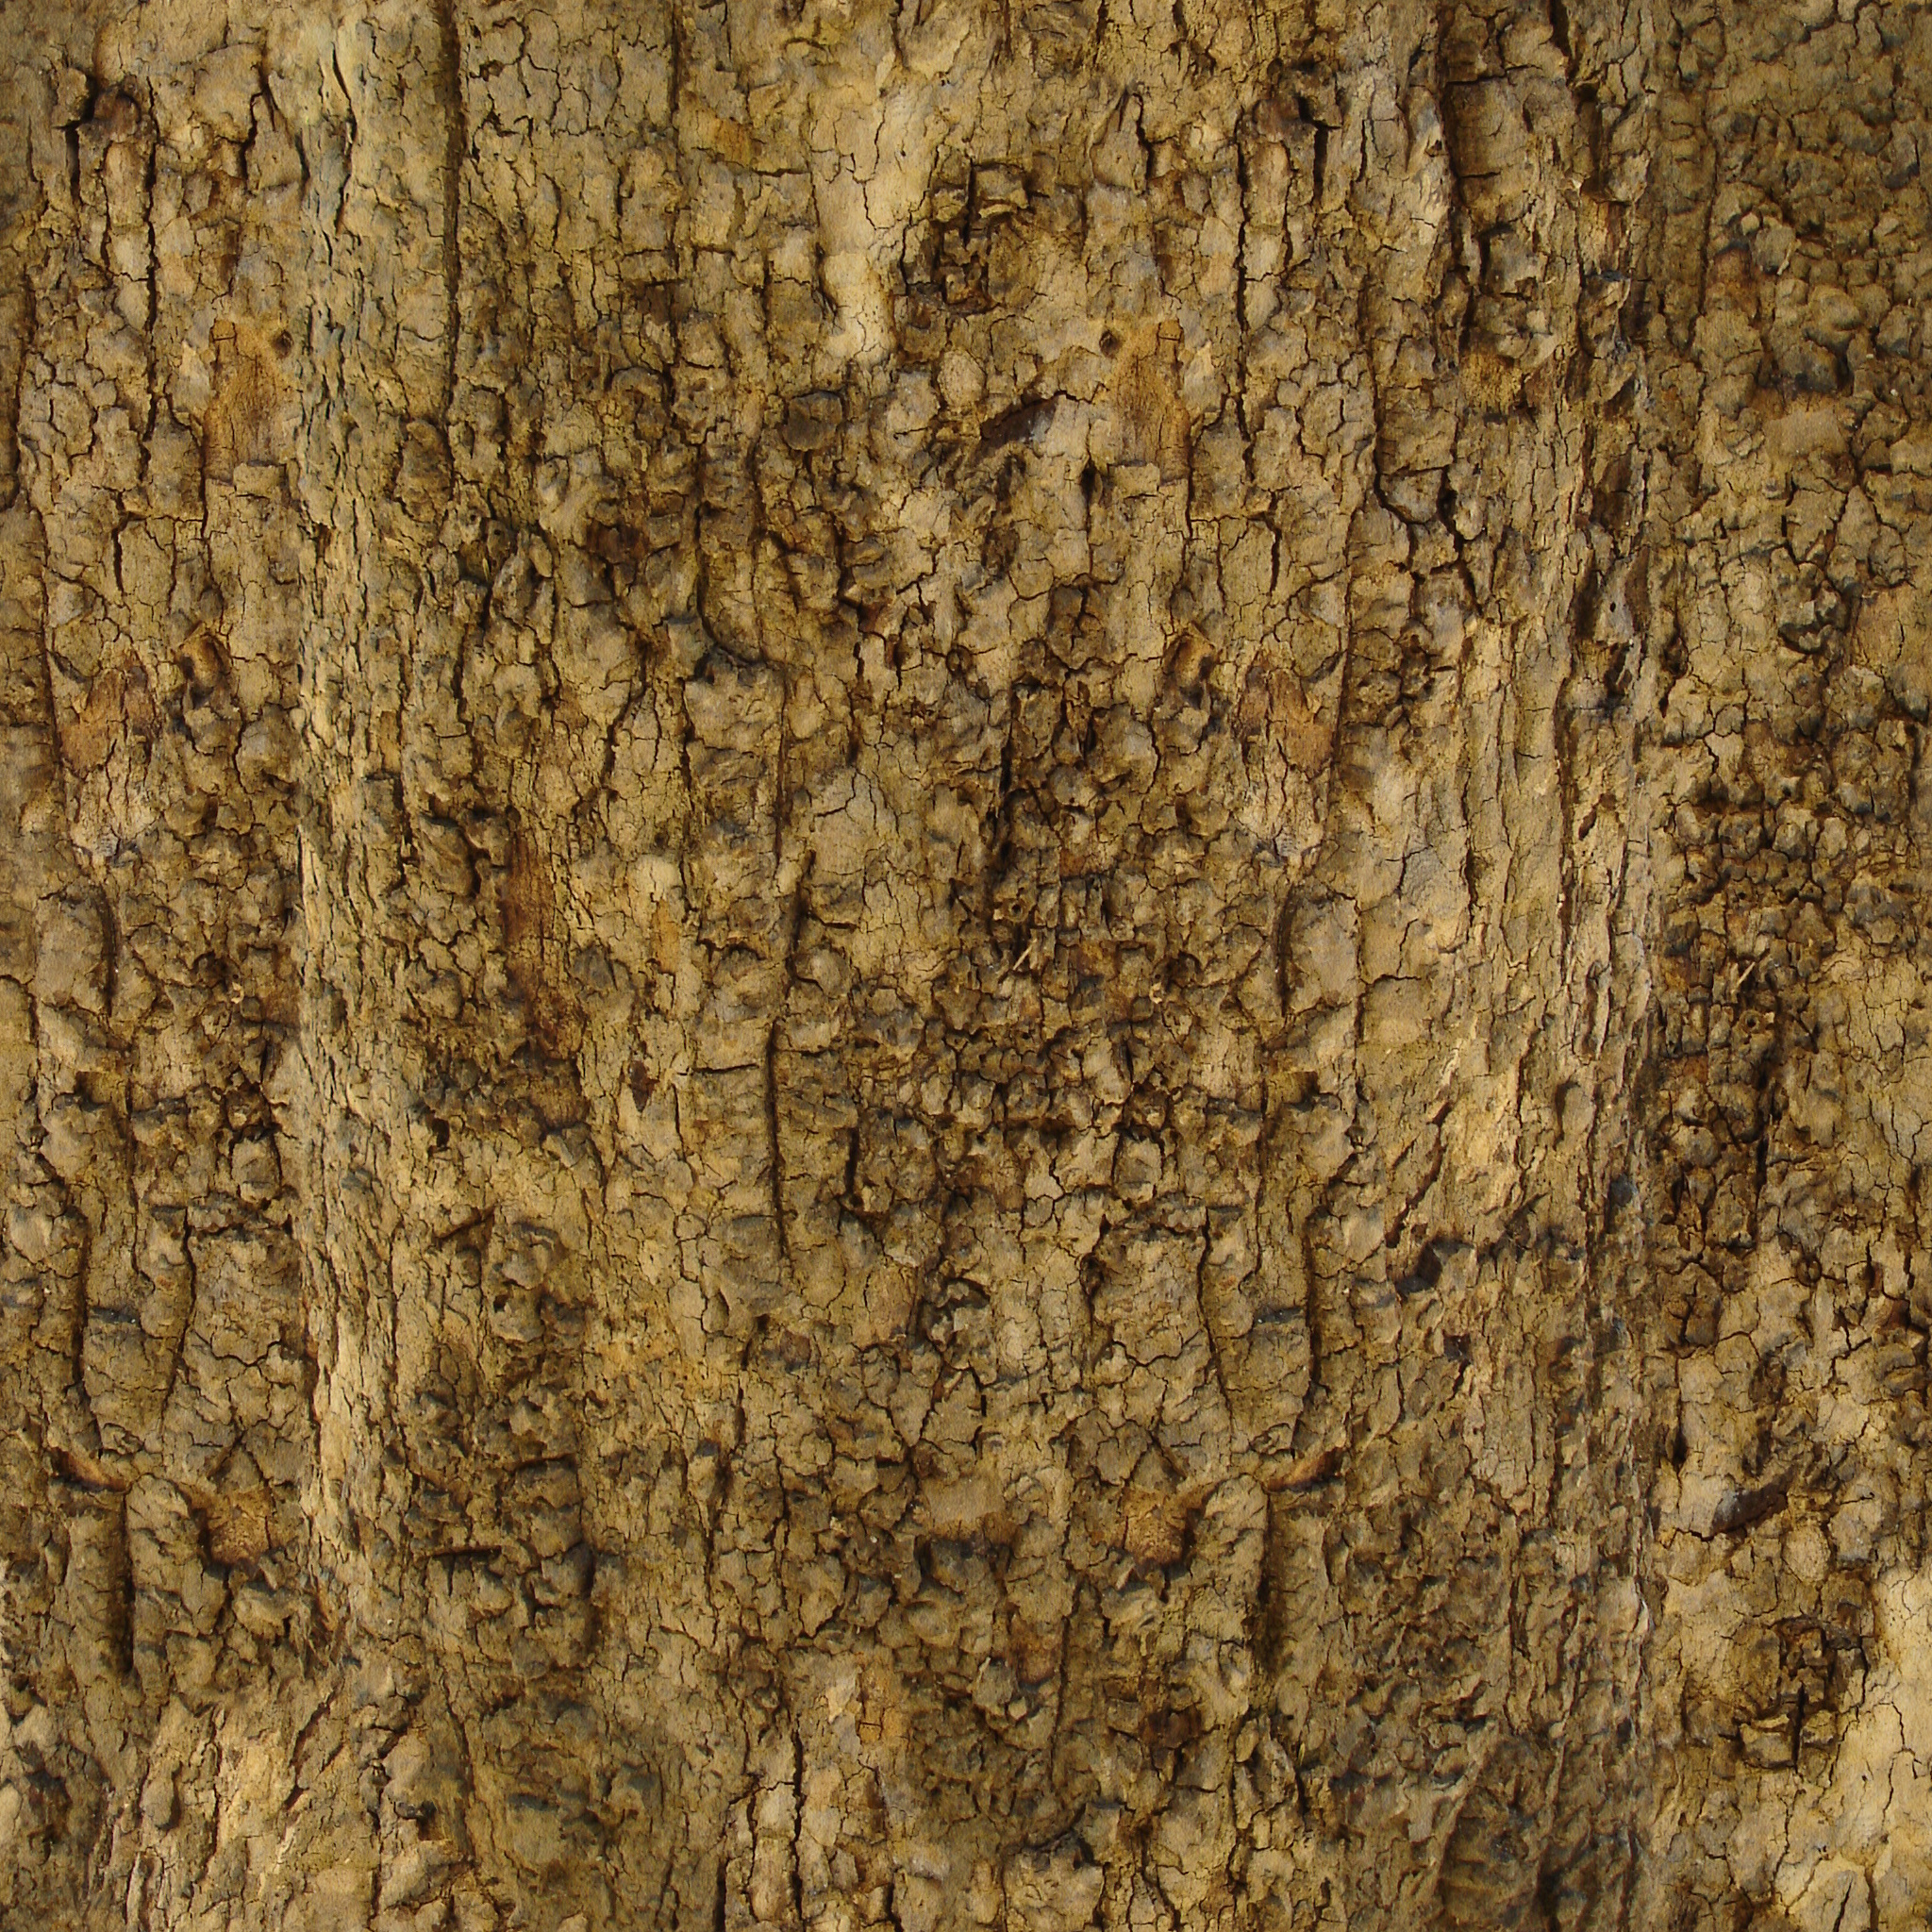 Tree Bark Texture #1 - Seamless - 2K